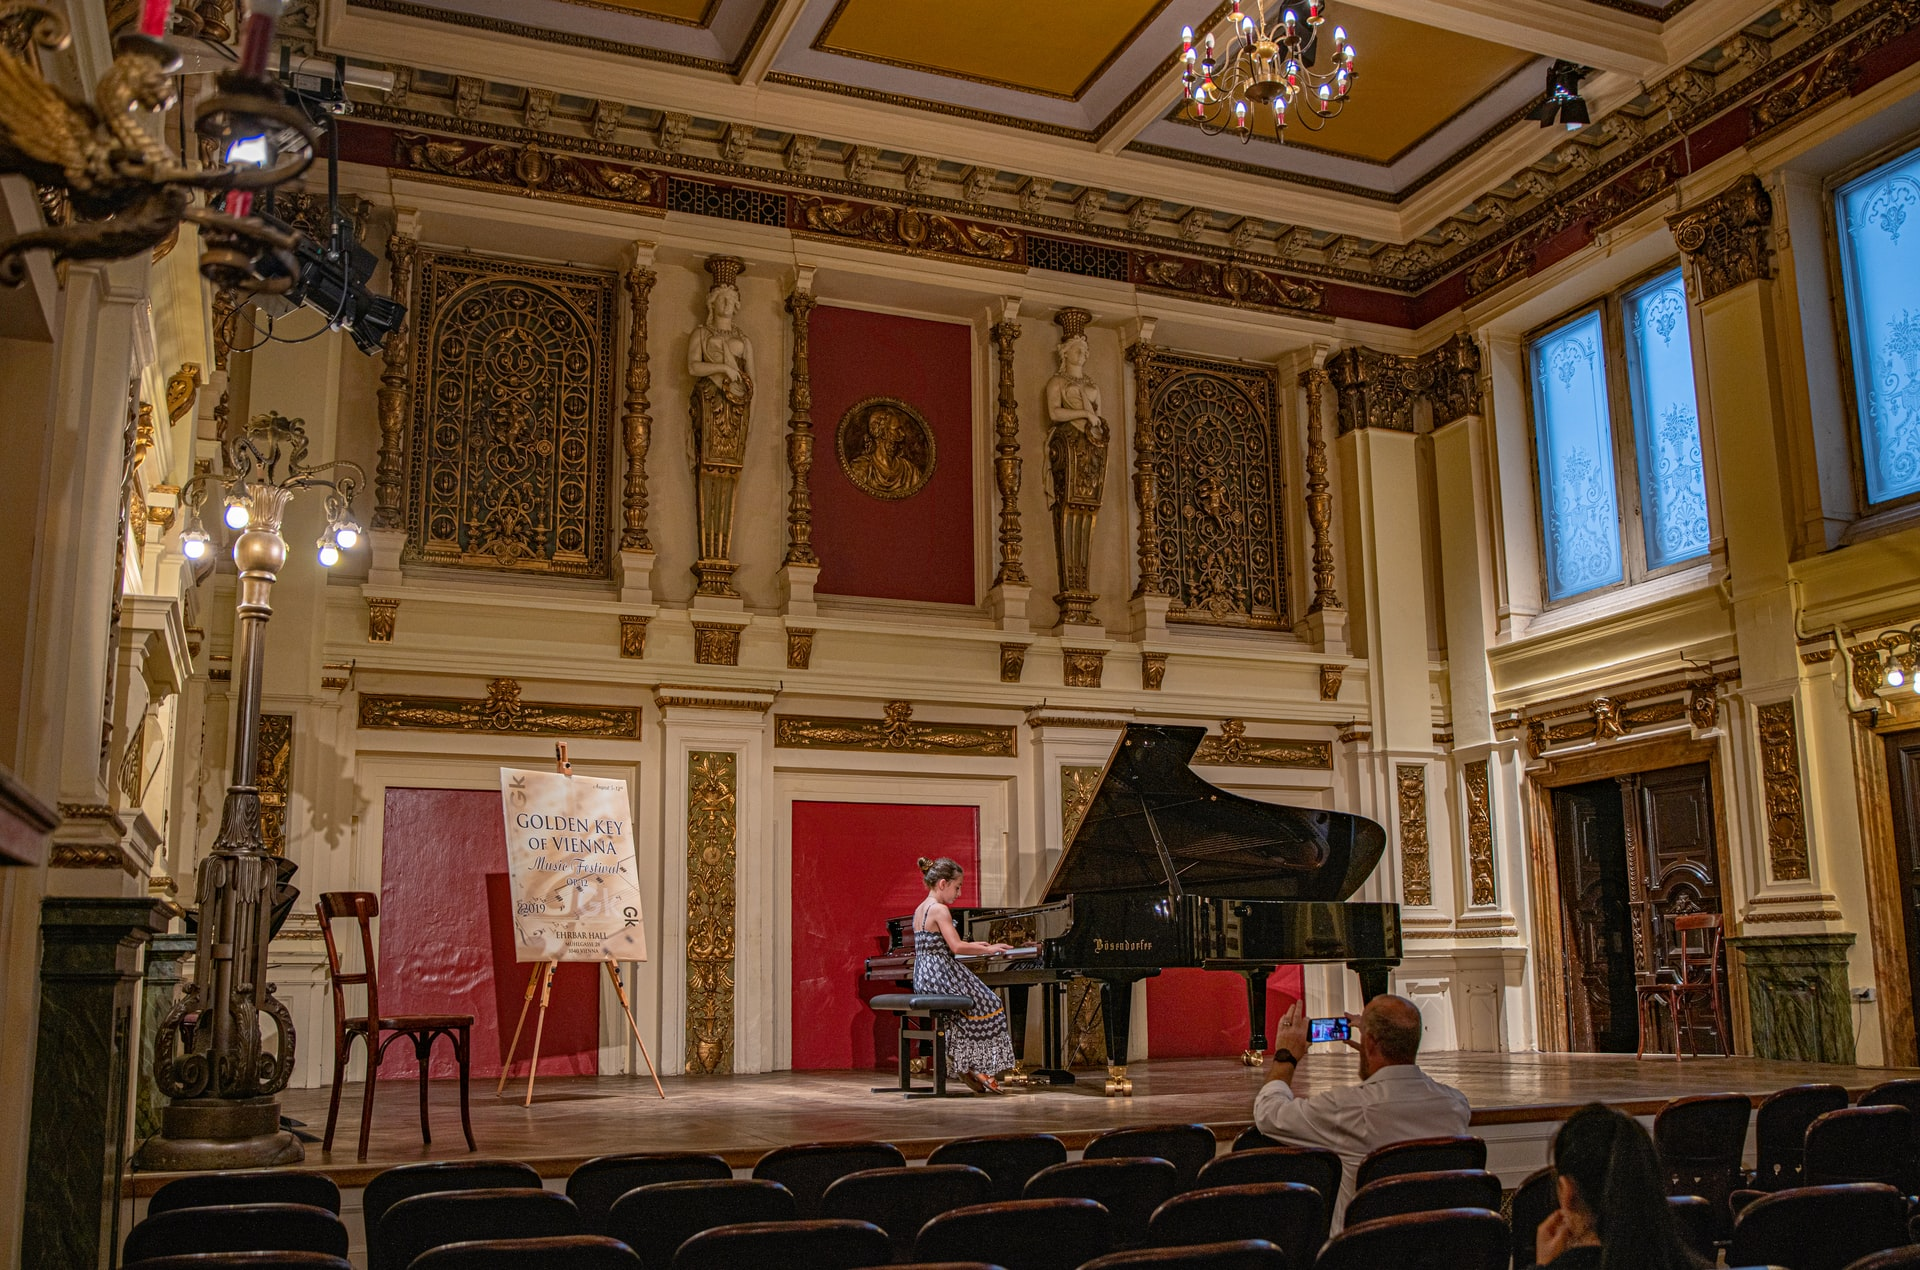 Woman plays grand piano in ornate old gold gilded room.